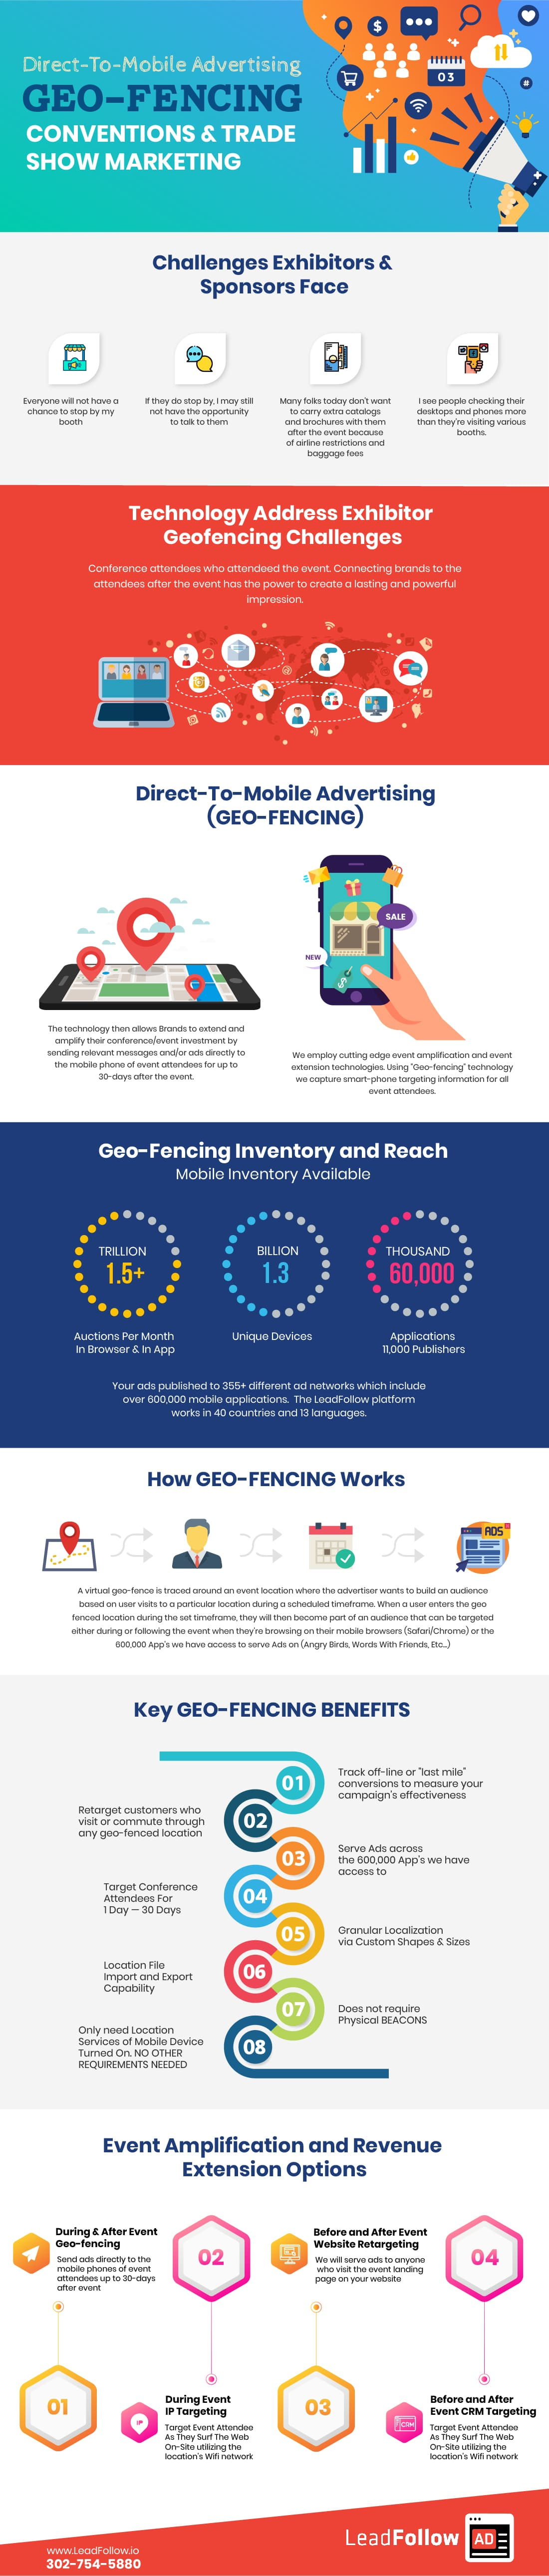 Geofencing Geofence Events tradeshows Custom Audiences infographic